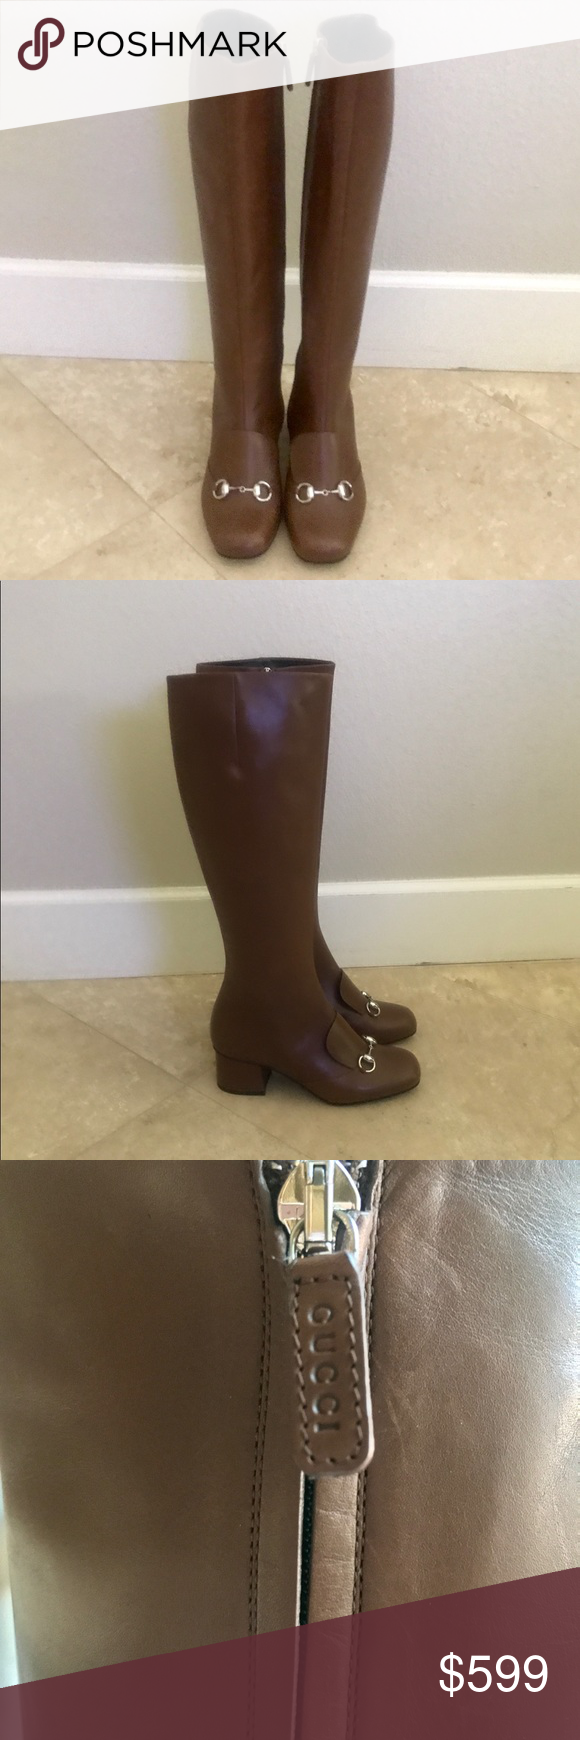 9bdfc1c2c NWT 100% Authentic Gucci Lillian Horsebit Boots!! NWT Gucci Lillian Horsebit  Knee High